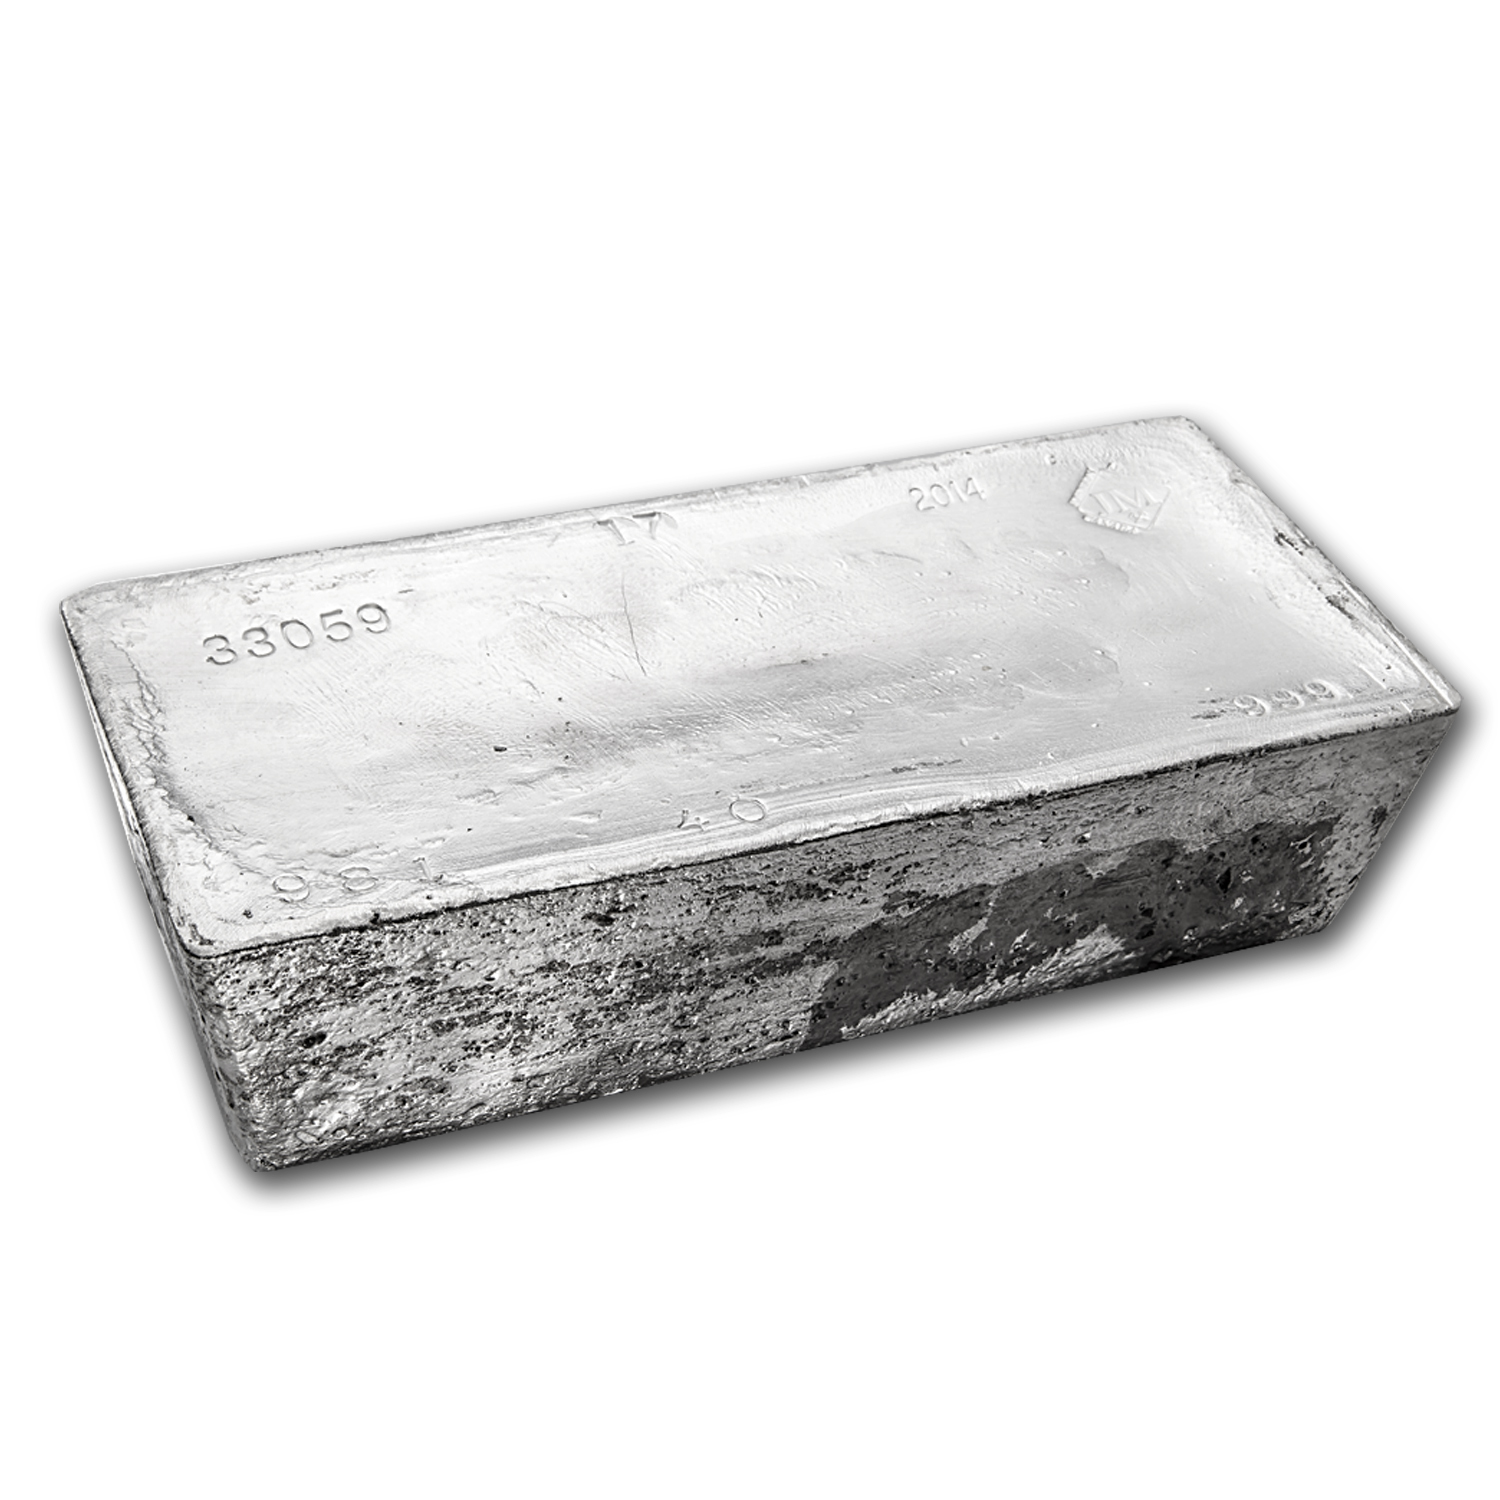 978.50 oz Silver Bars - Johnson Matthey